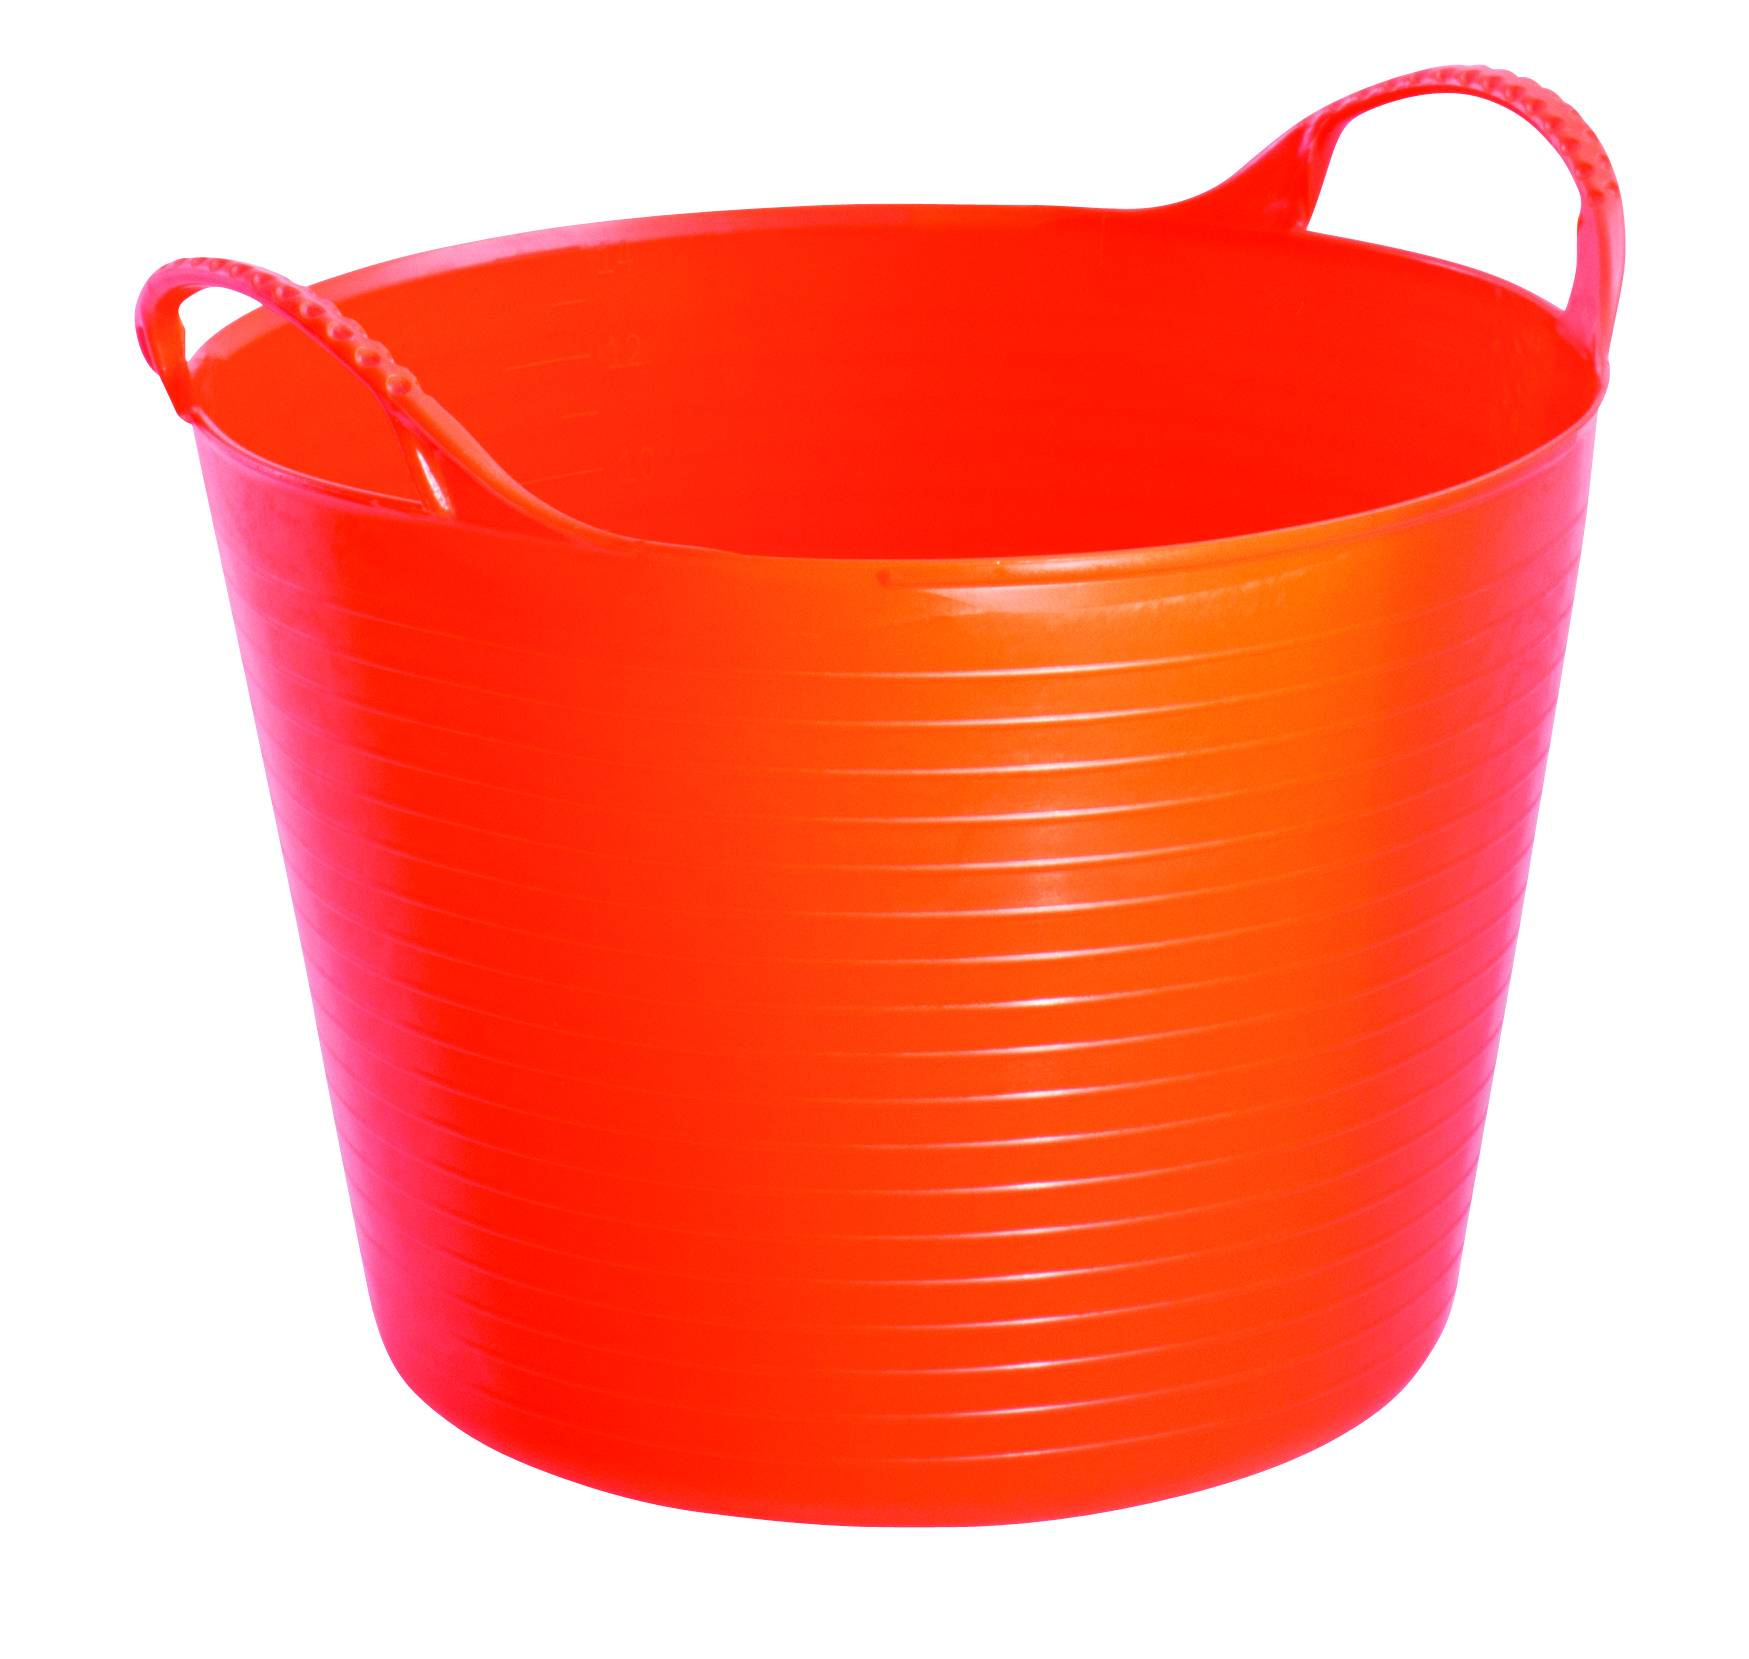 Tubtrugs Flexible Small 2-Handled Tub